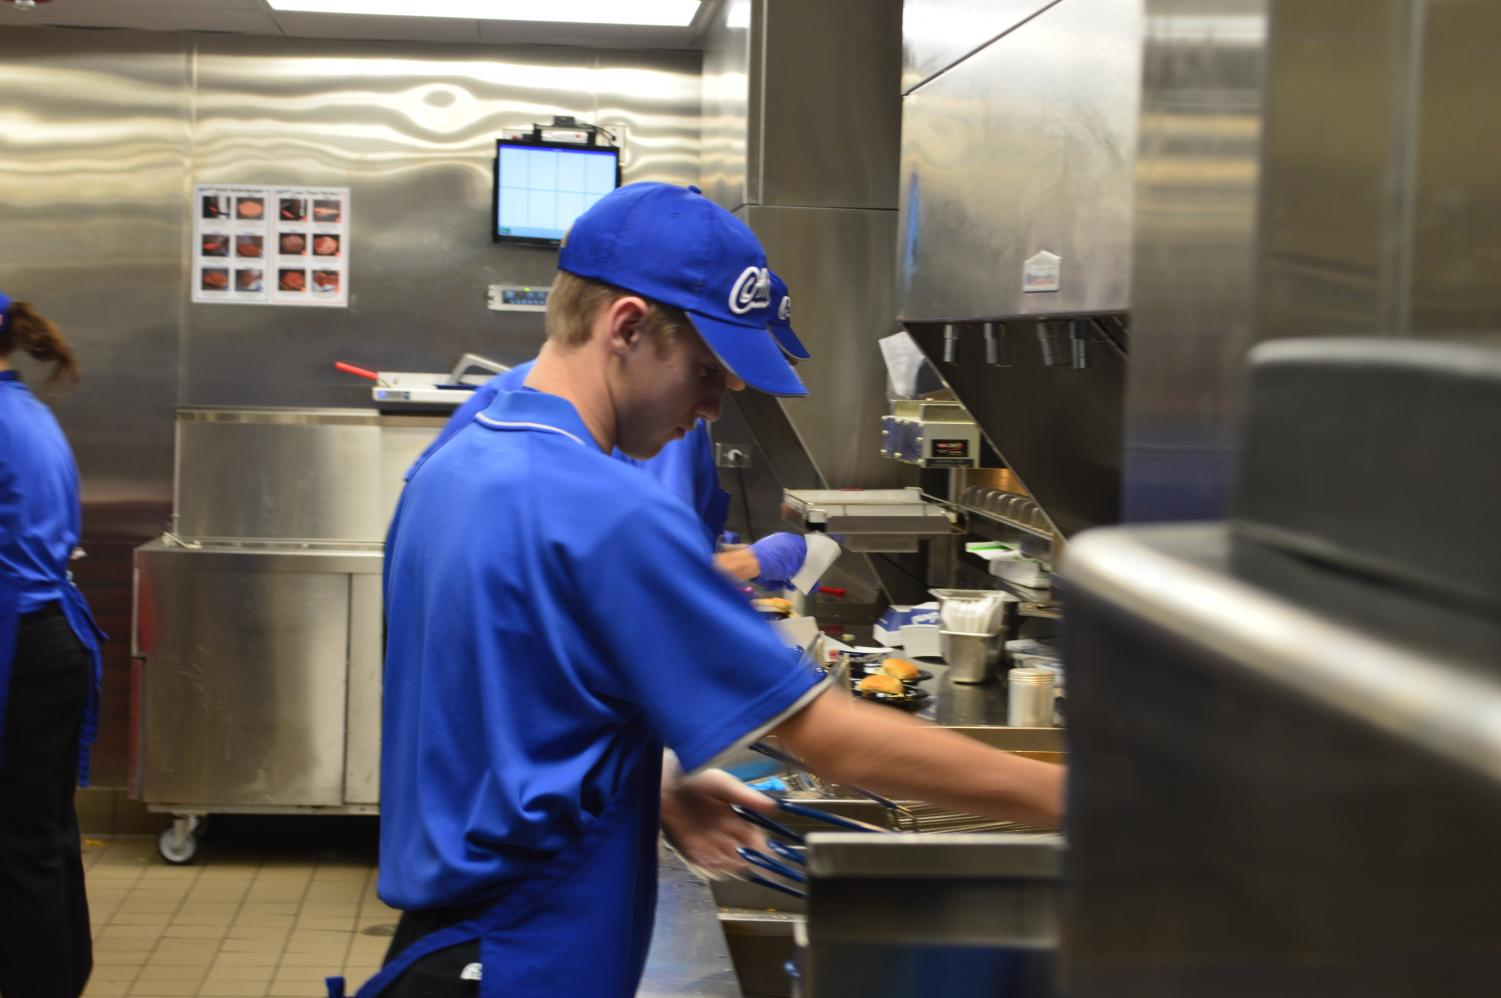 Senior Matt Gerlach works the fryer at the Route 47 Culver's.